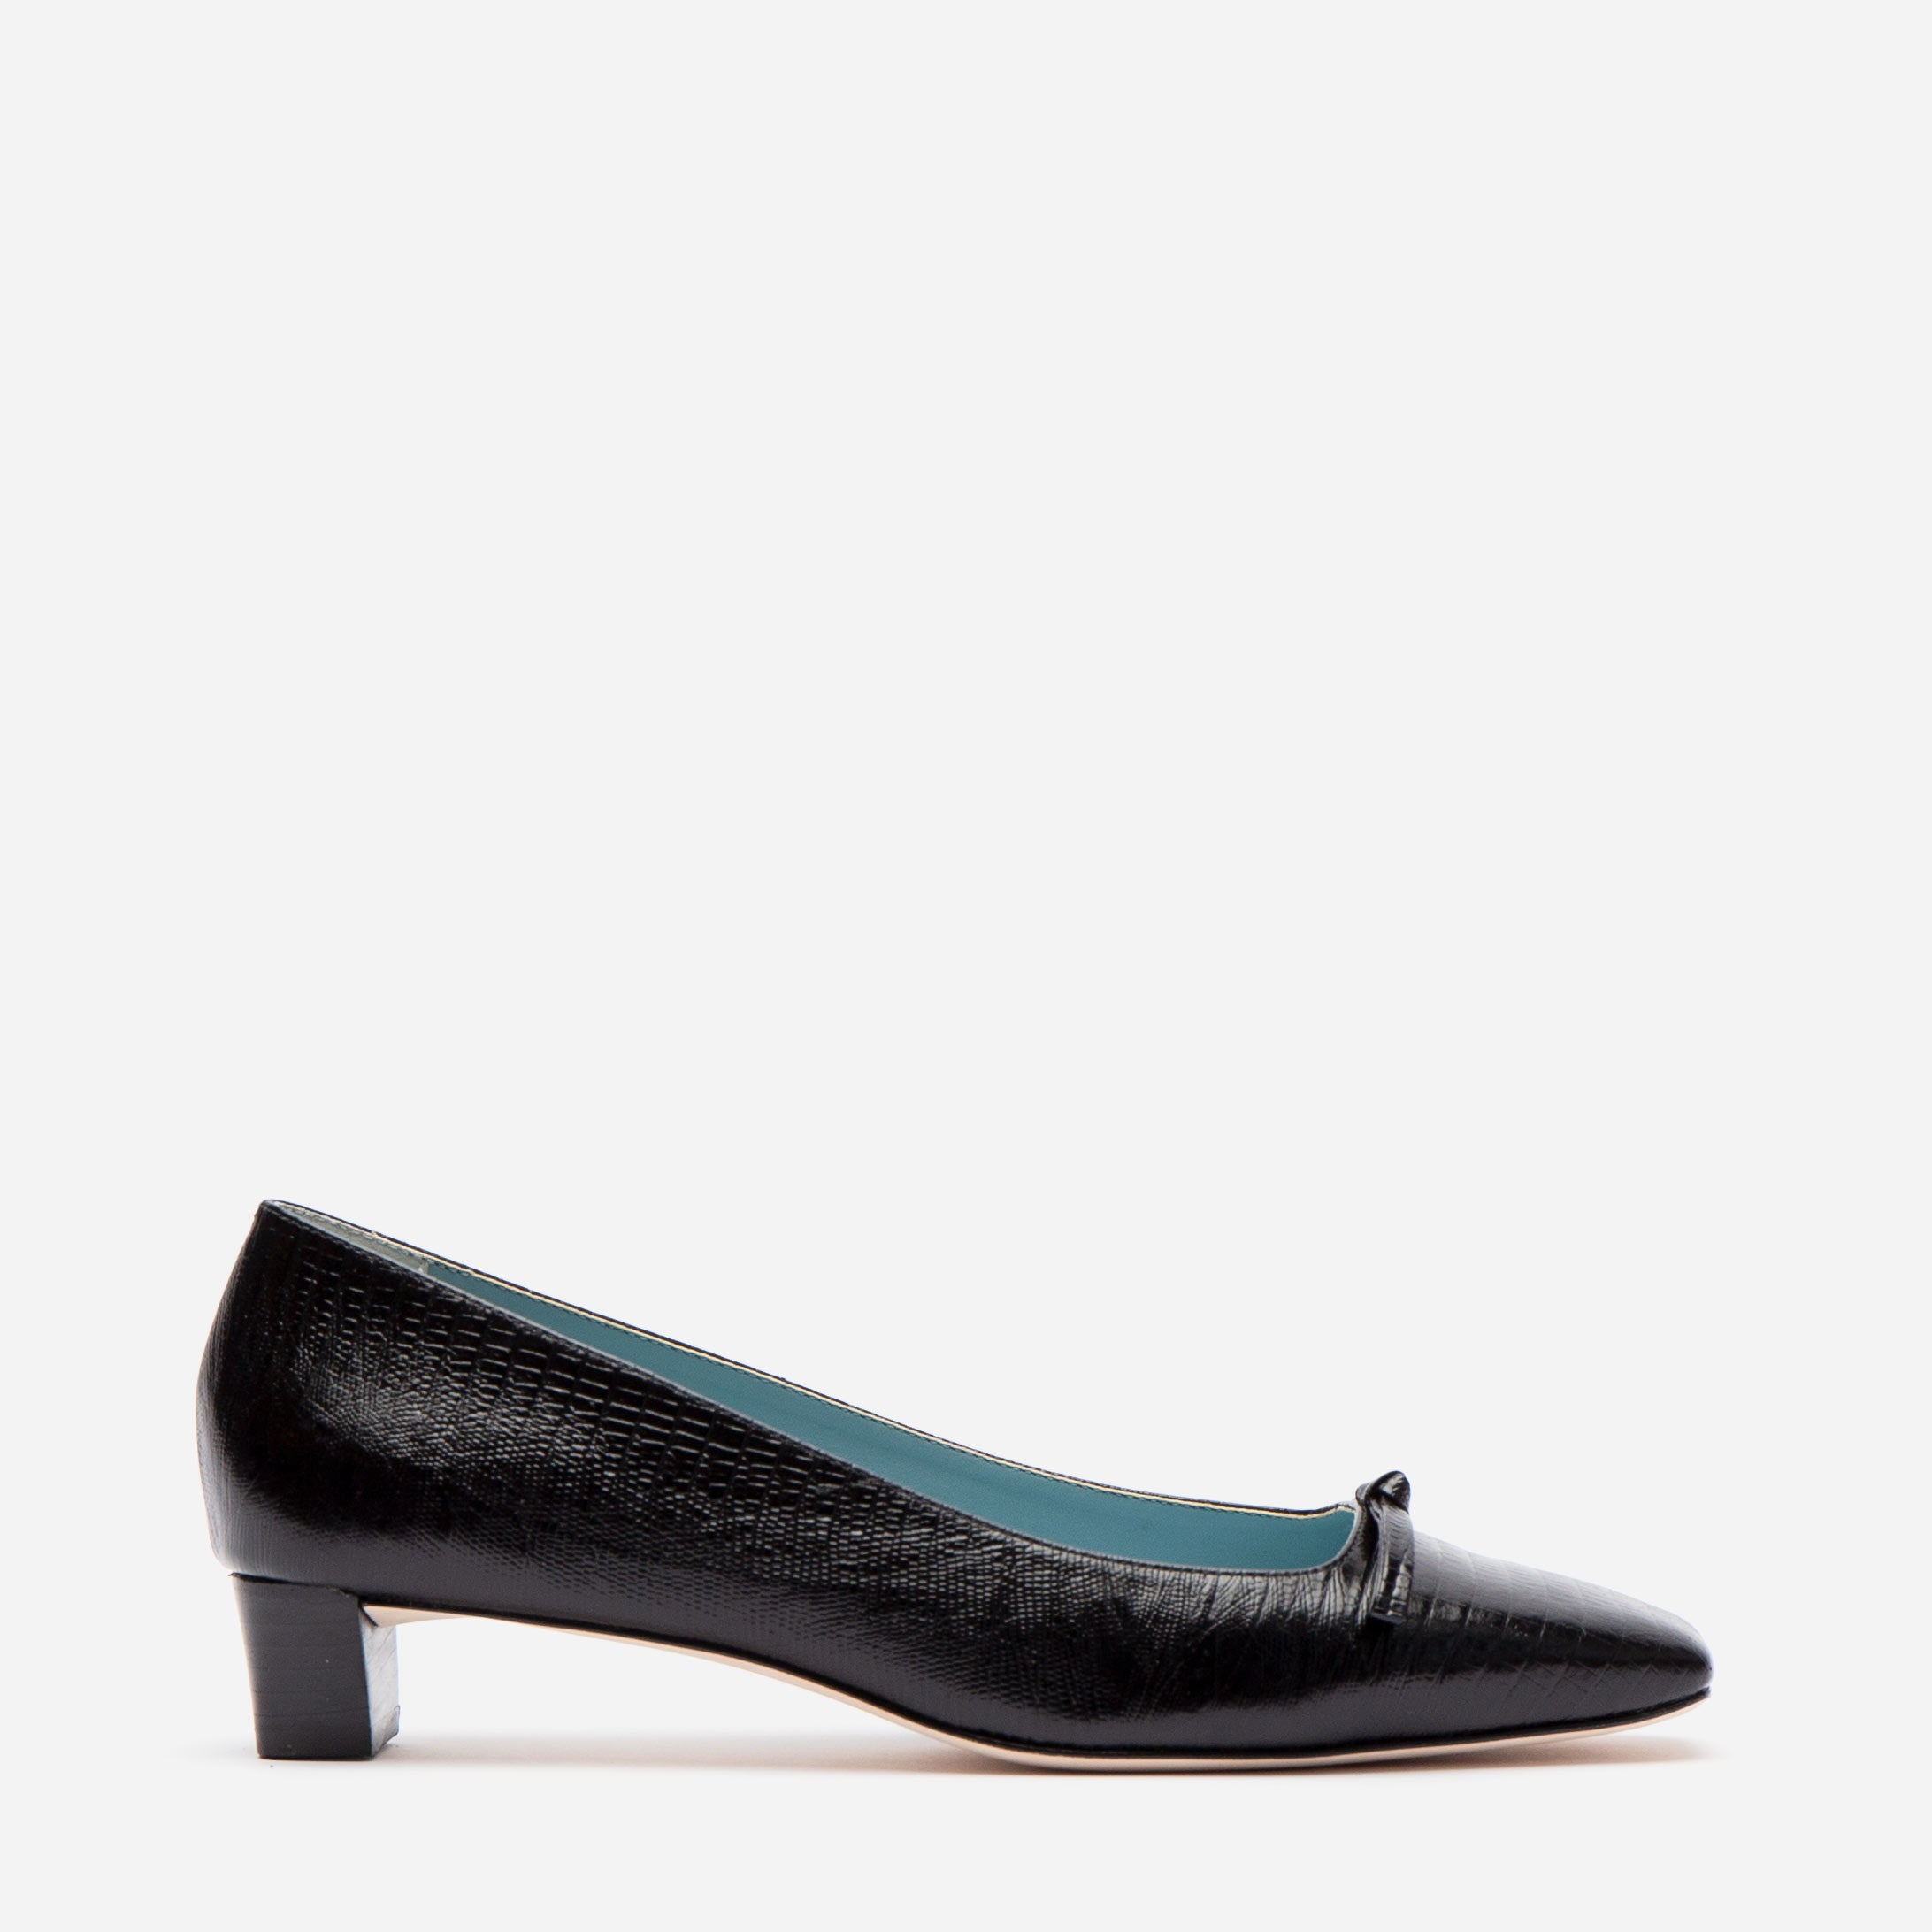 Mary Mini Block Heel Lizard Embossed Black